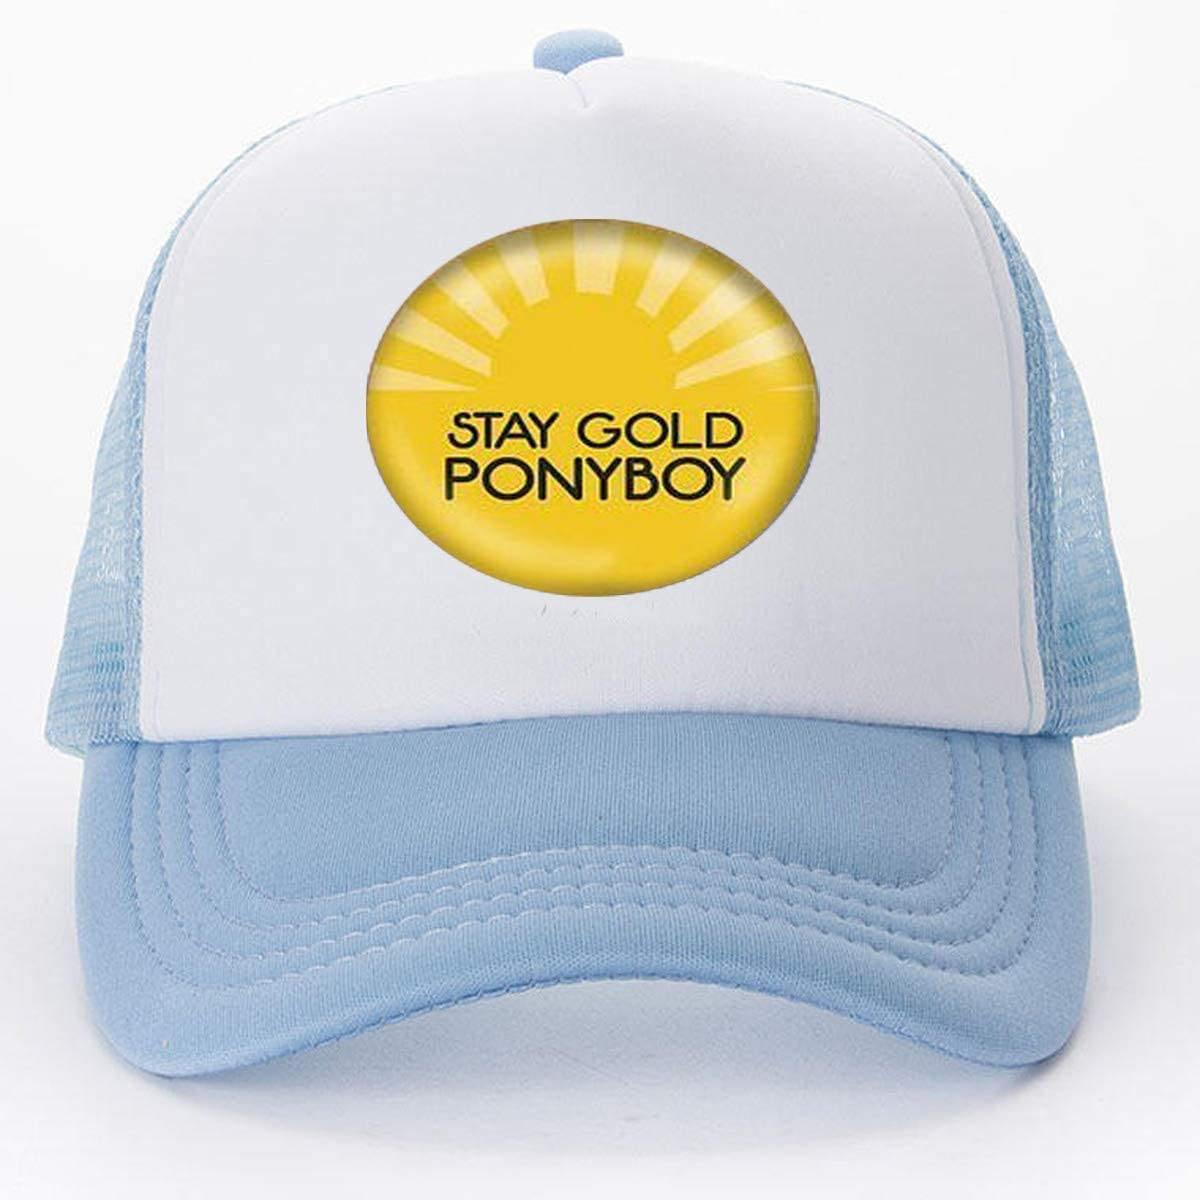 Amazon Com Stay Gold Ponyboy The Outsiders Reference Pendant Baseball Caps Golf Caps Tennis Hat Christian Insect Art Baseball Caps Golf Caps Unique Baseball Customized Gift Everyday Gift Home Kitchen Stay gold ponyboy, stay golden ponyboy, ponyboy, pony boy, stay gold pony boy, stay gold, reto, vintage, sunset, outsiders, randle, socs, grease. amazon com stay gold ponyboy the